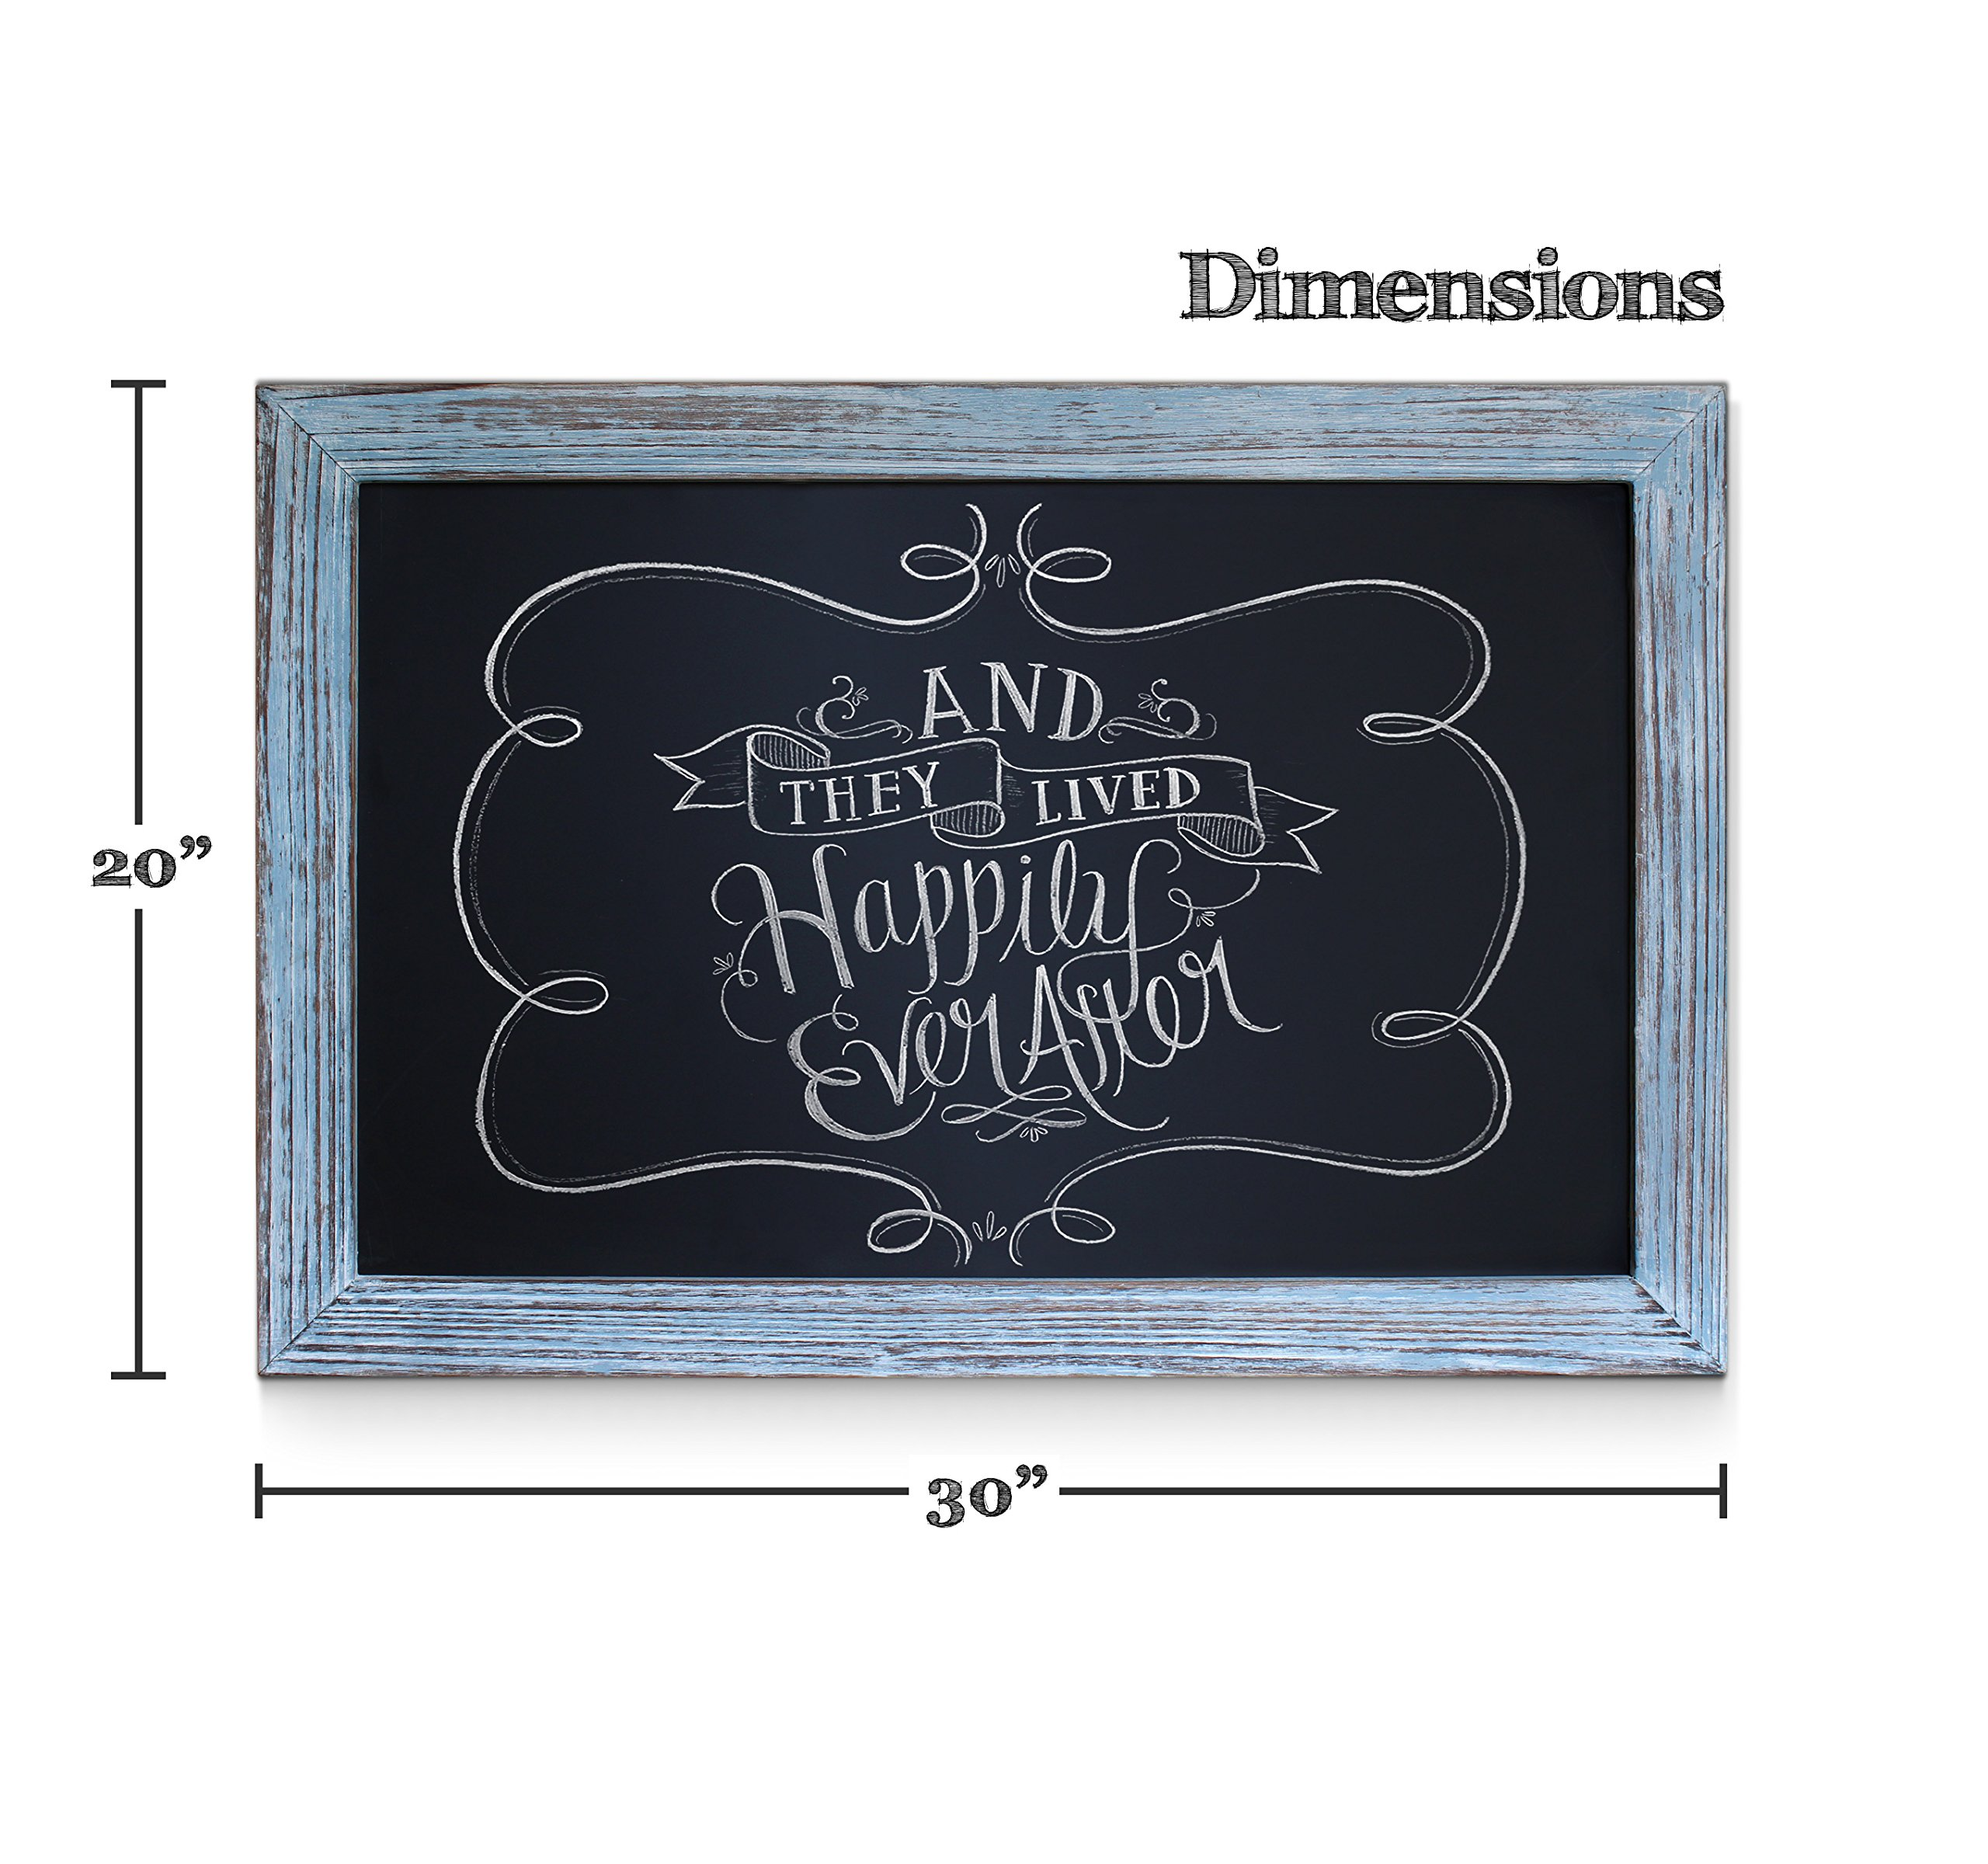 Rustic Blue Magnetic Wall Chalkboard, Extra Large Size 20'' x 30'', Framed Decorative Chalkboard - Great for Kitchen Decor, Weddings, Restaurant Menus and More! … (20''x30'') by HBCY Creations (Image #2)